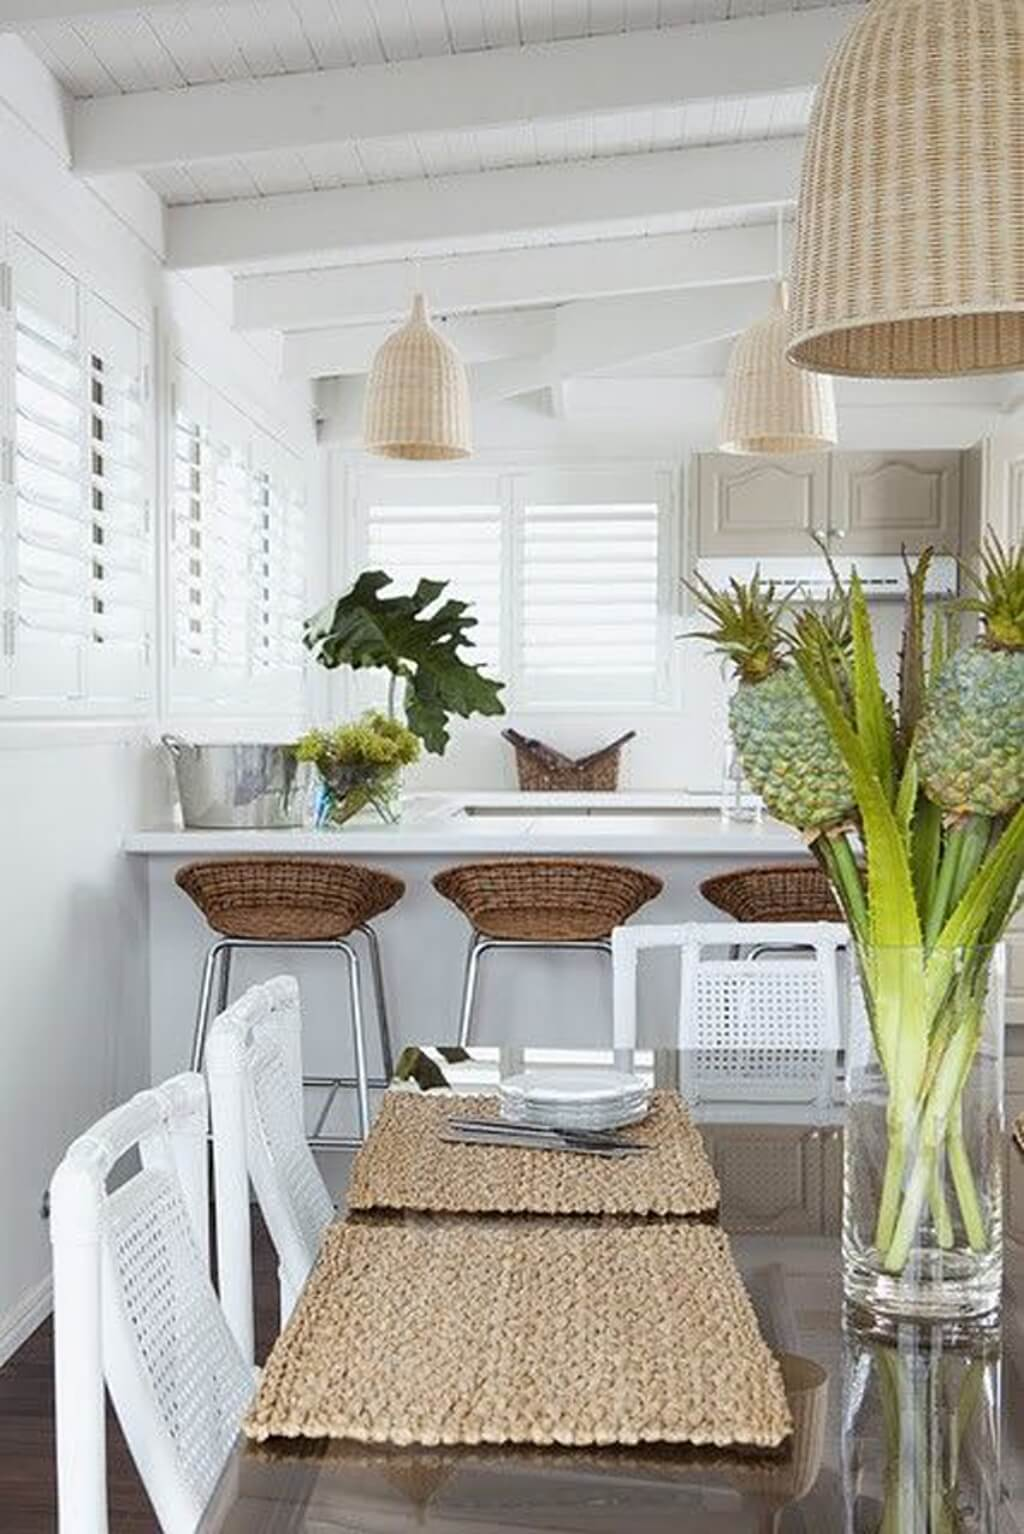 Kitchen Area with Woven Chairs and Shutters